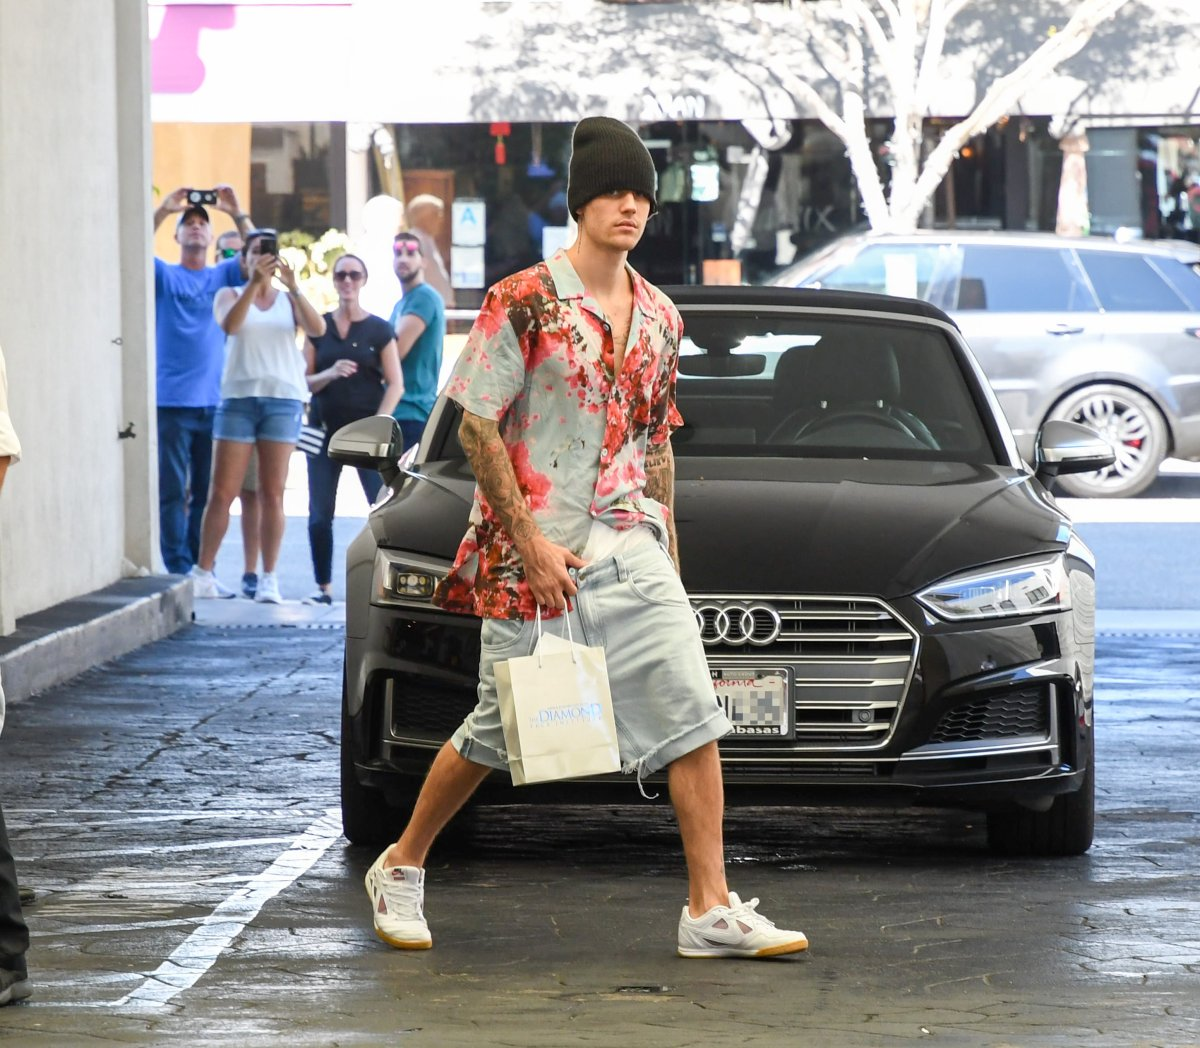 Justin Bieber is seen on Aug. 29, 2019 in Los Angeles, Calif.